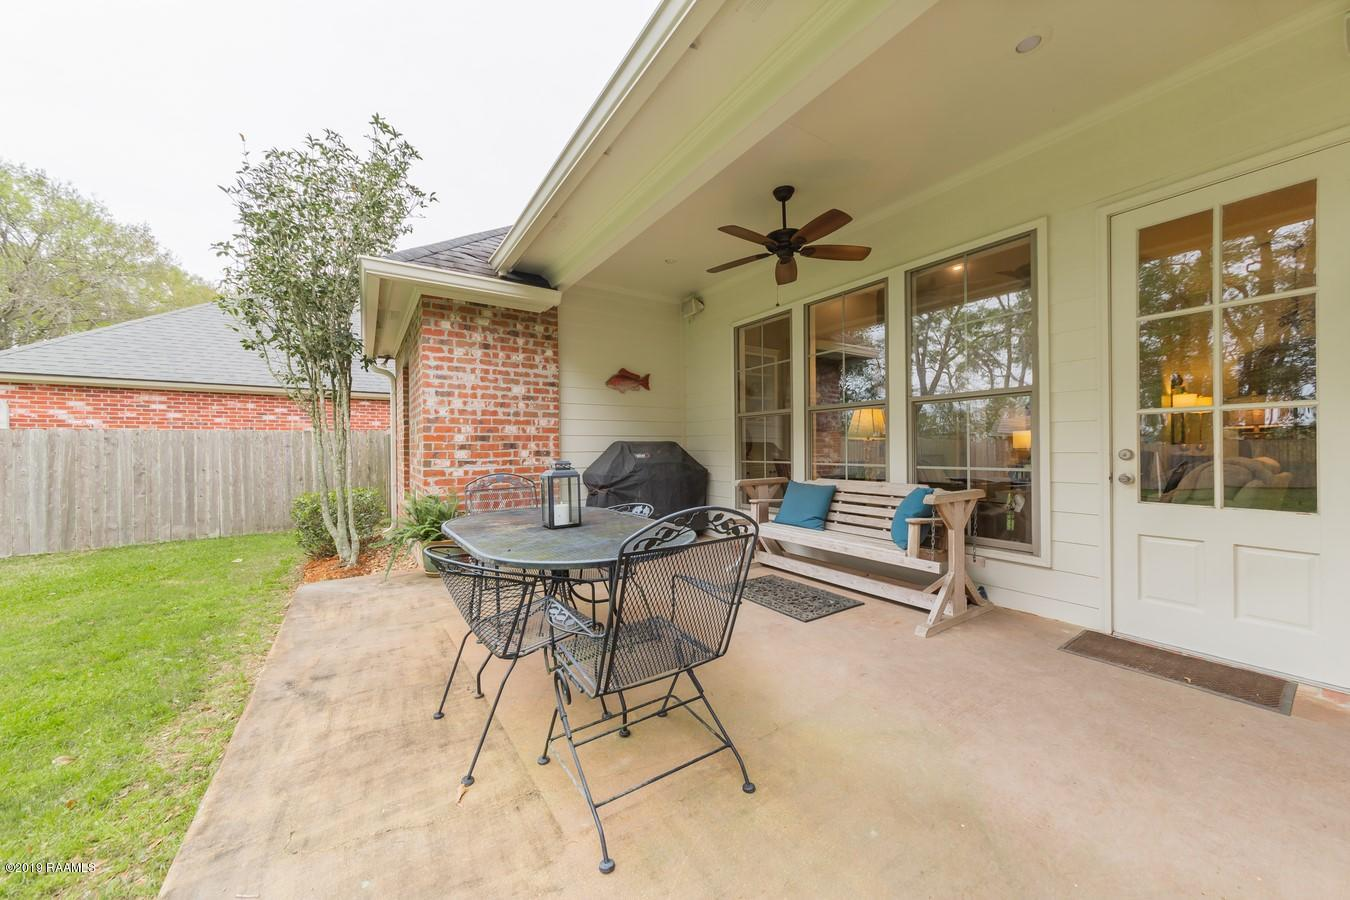 143 Willow Bend, Youngsville, LA 70592 Photo #21